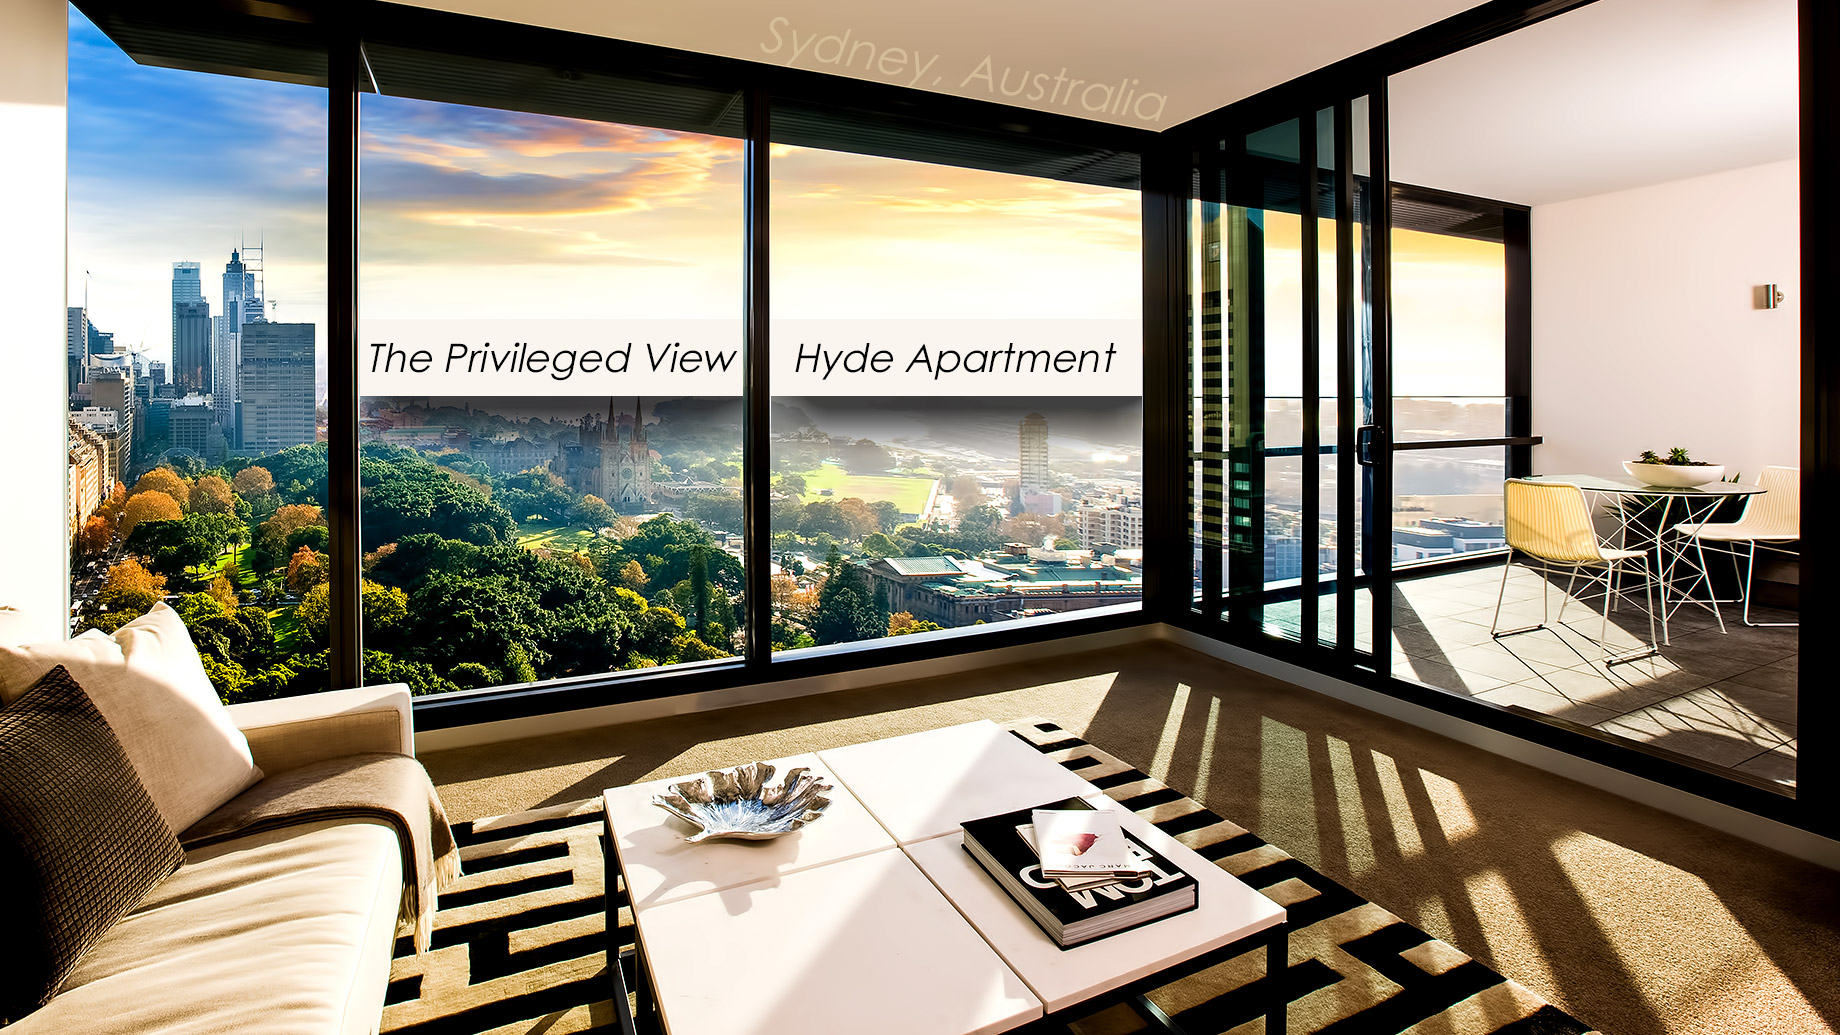 The Privileged View of the Luxury Hyde Apartment Building in Sydney, Australia